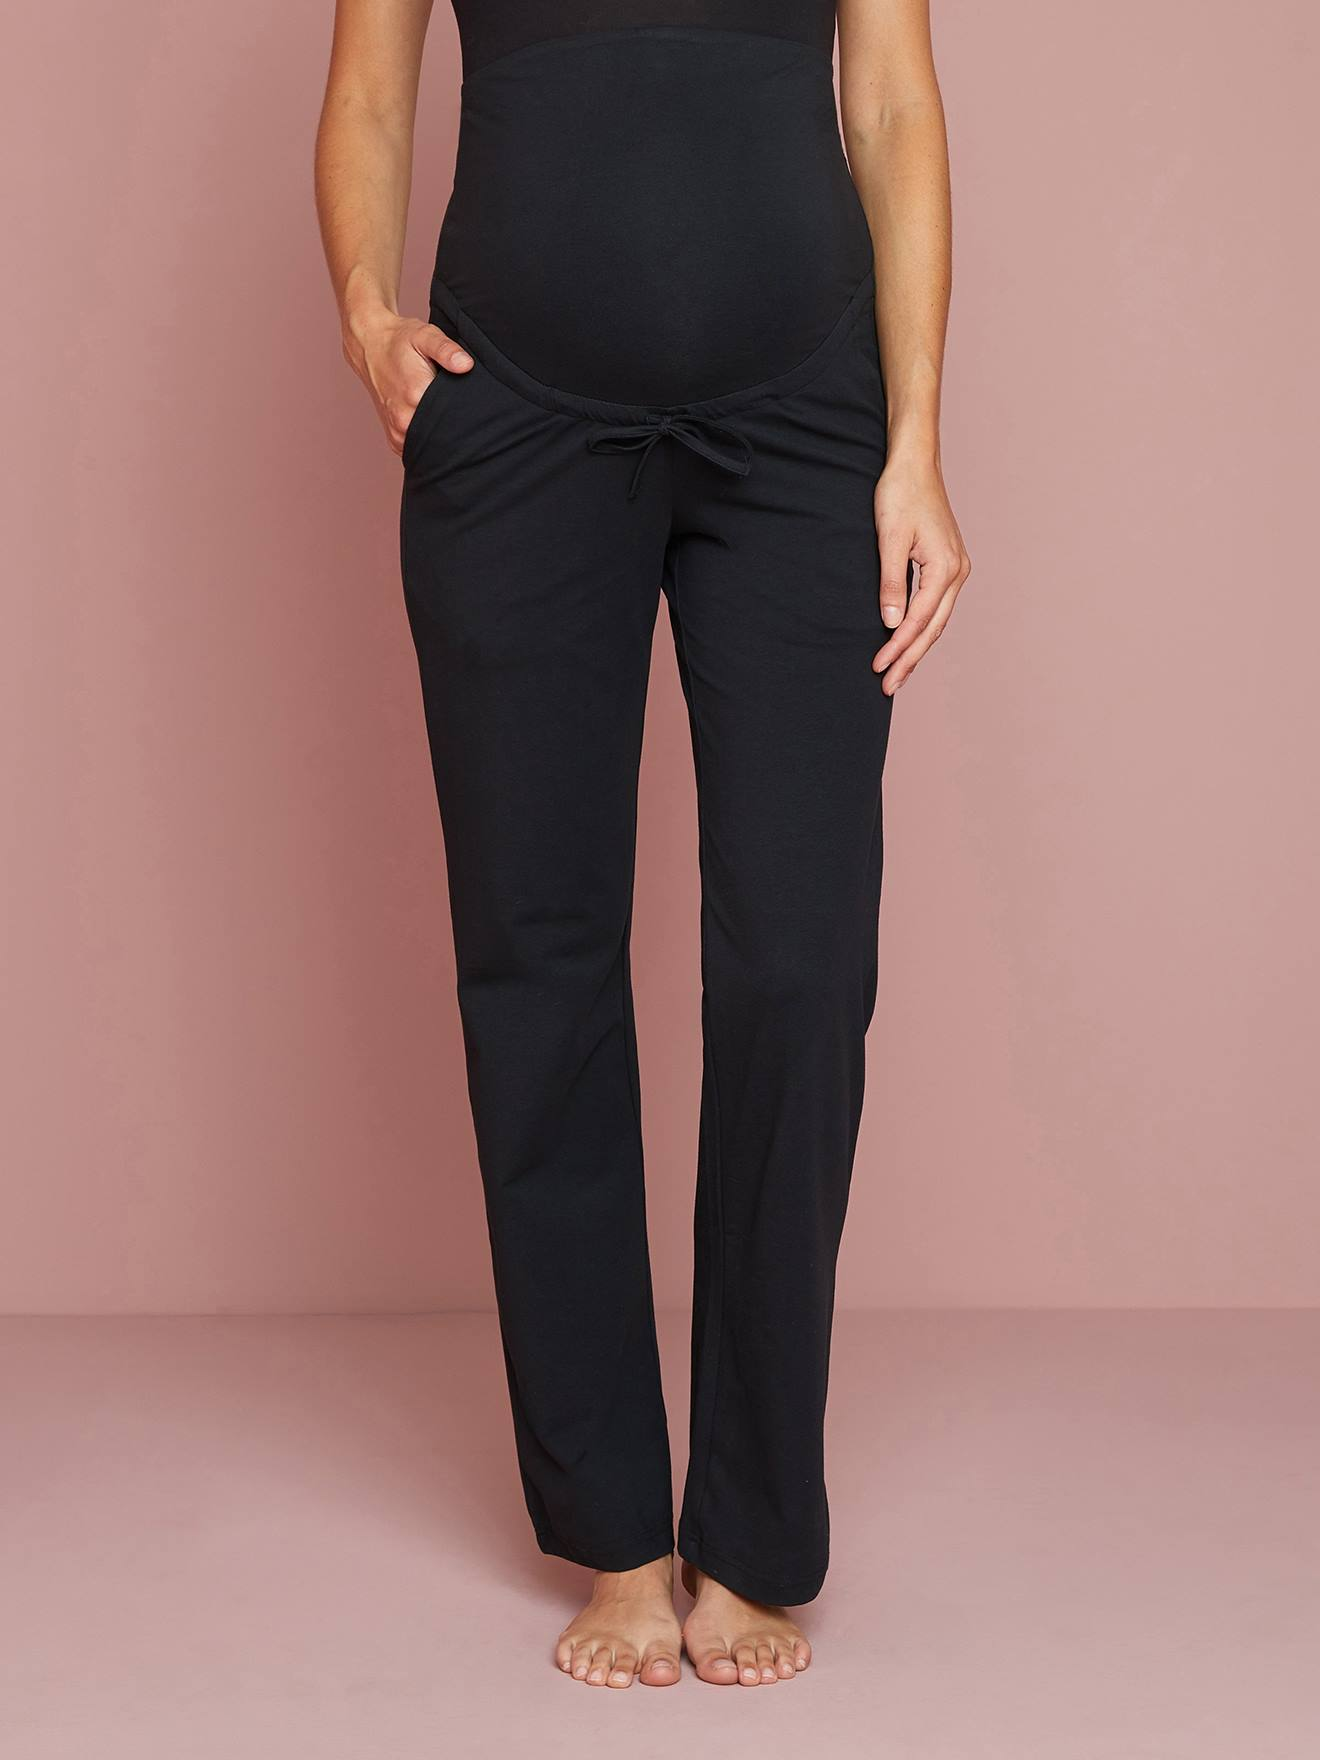 e8ca86d55d Before-After Yoga Trousers, Maternity | Vertbaudet